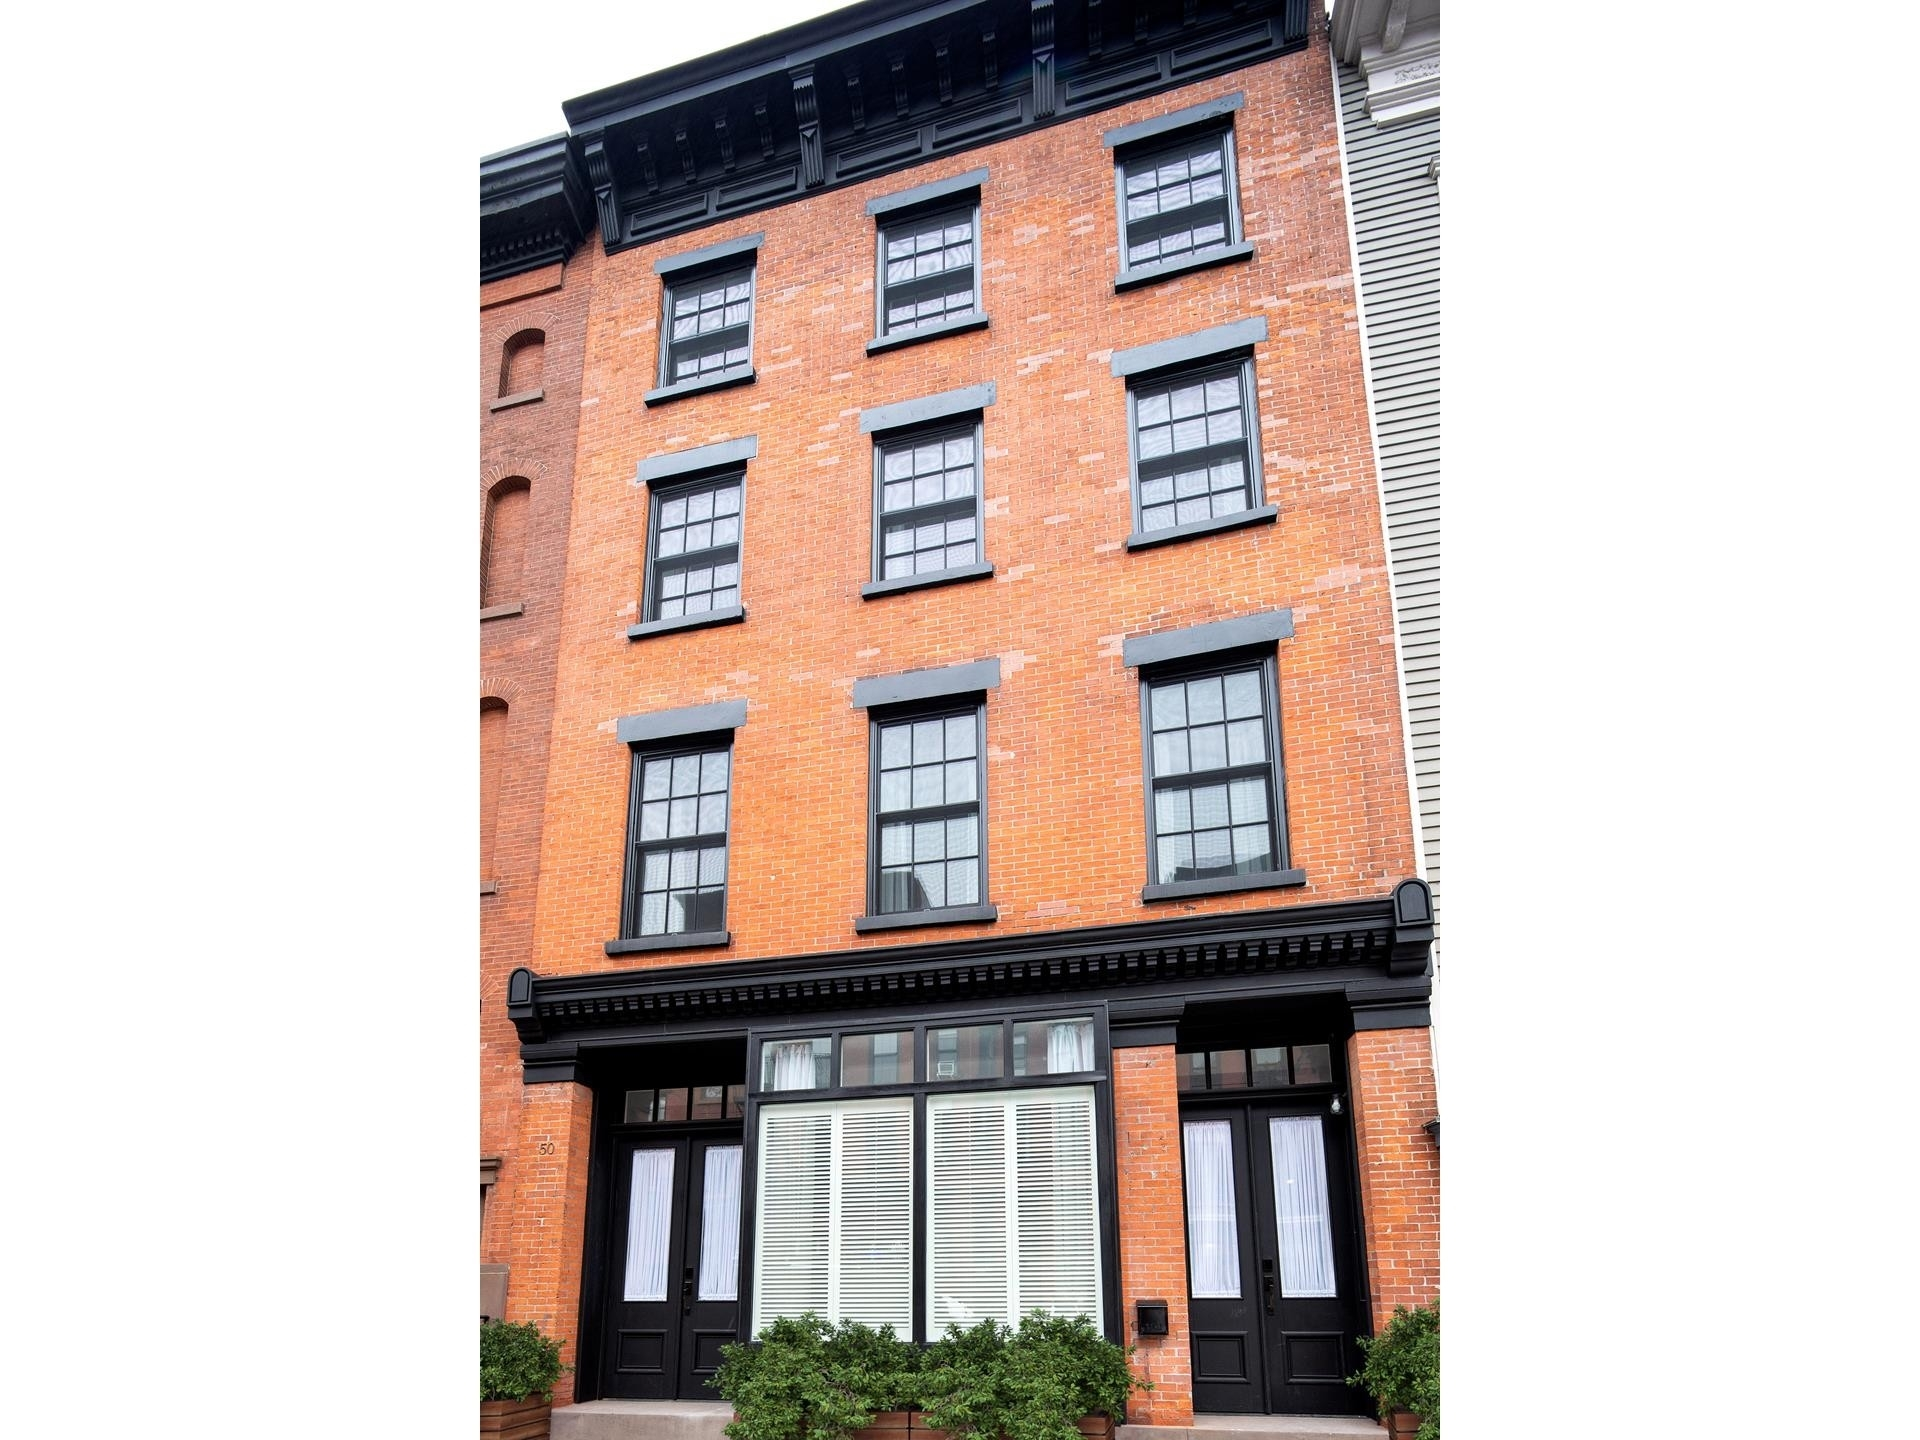 15. Single Family Townhouse for Sale at 50 HICKS ST , TH Brooklyn Heights, Brooklyn, NY 11201